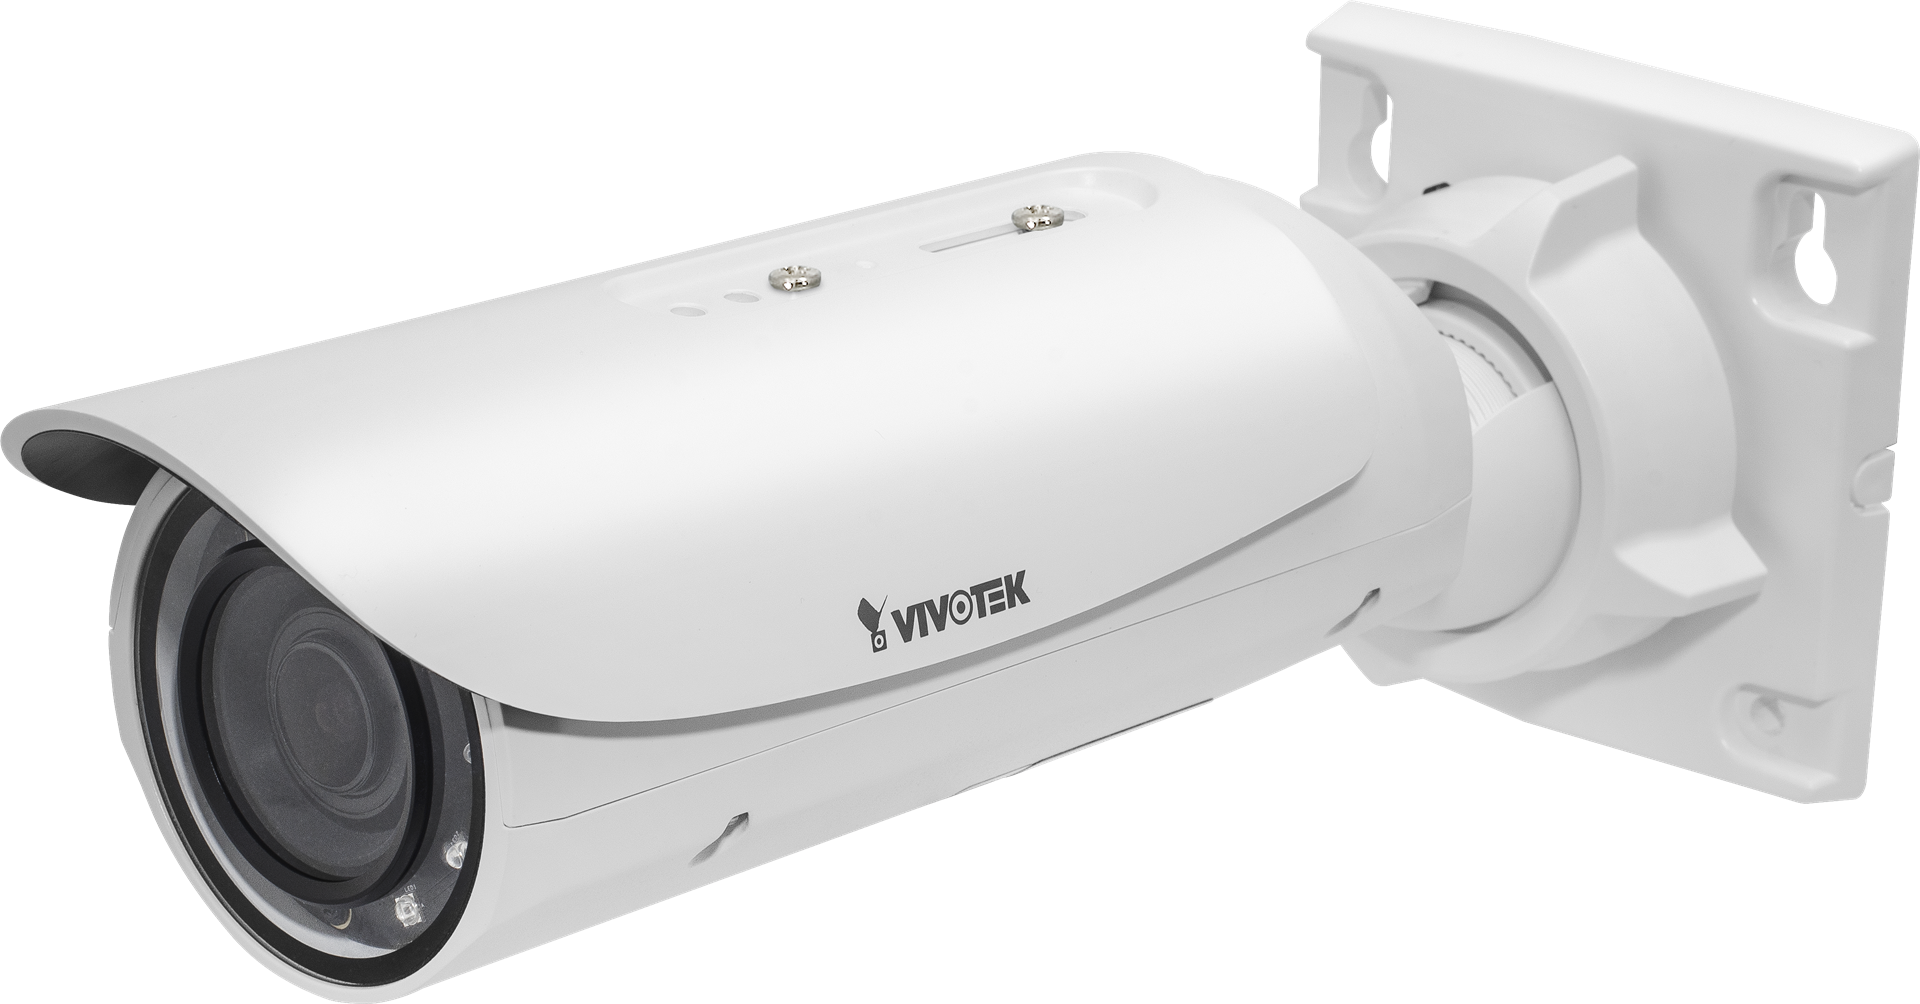 vivotek ib8367 - bullet network camera - 2mp